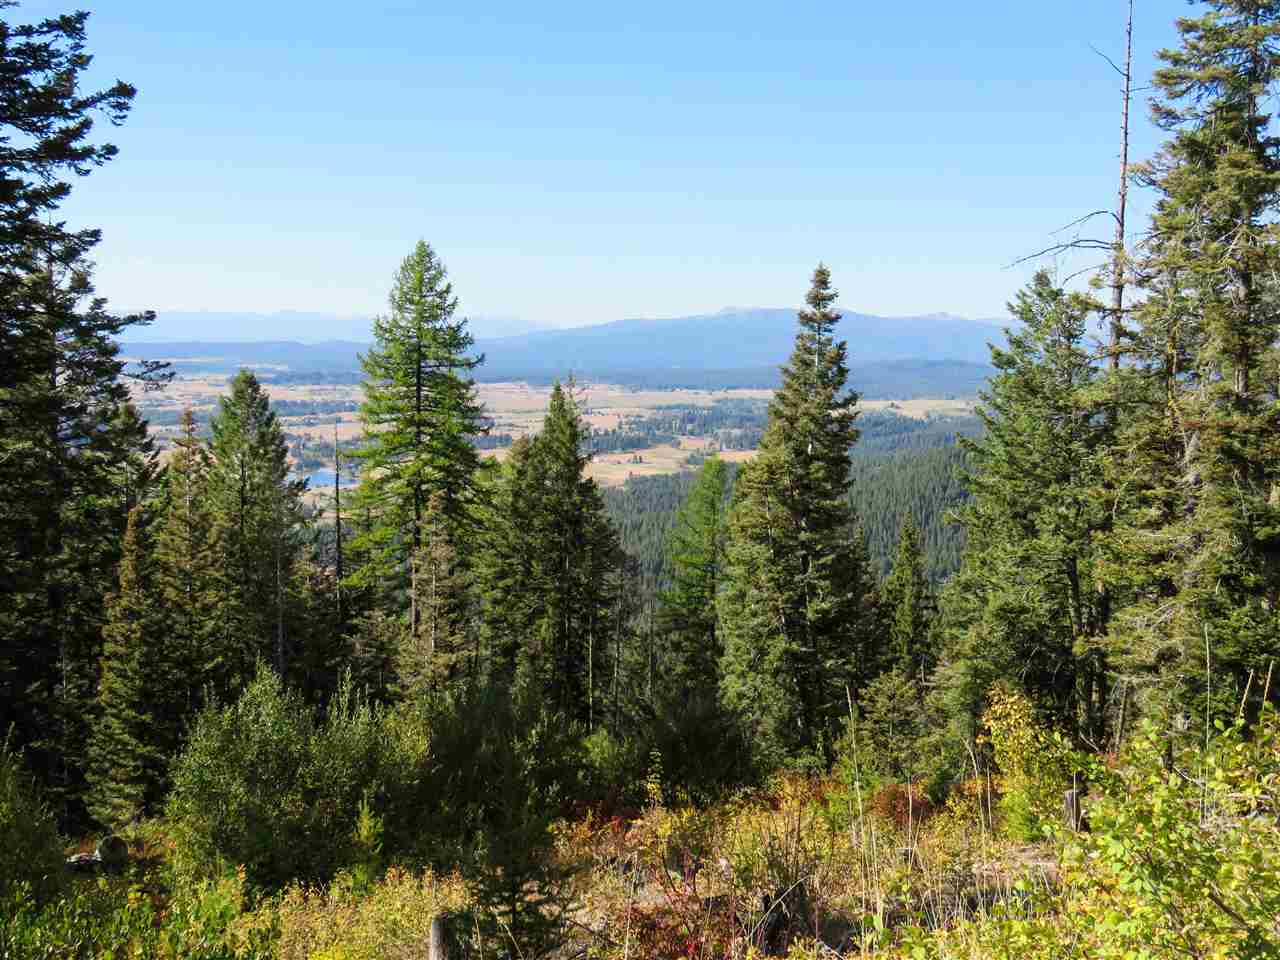 Recreational Property for Sale at Paddy Flat Road Paddy Flat Road McCall, Idaho 83638